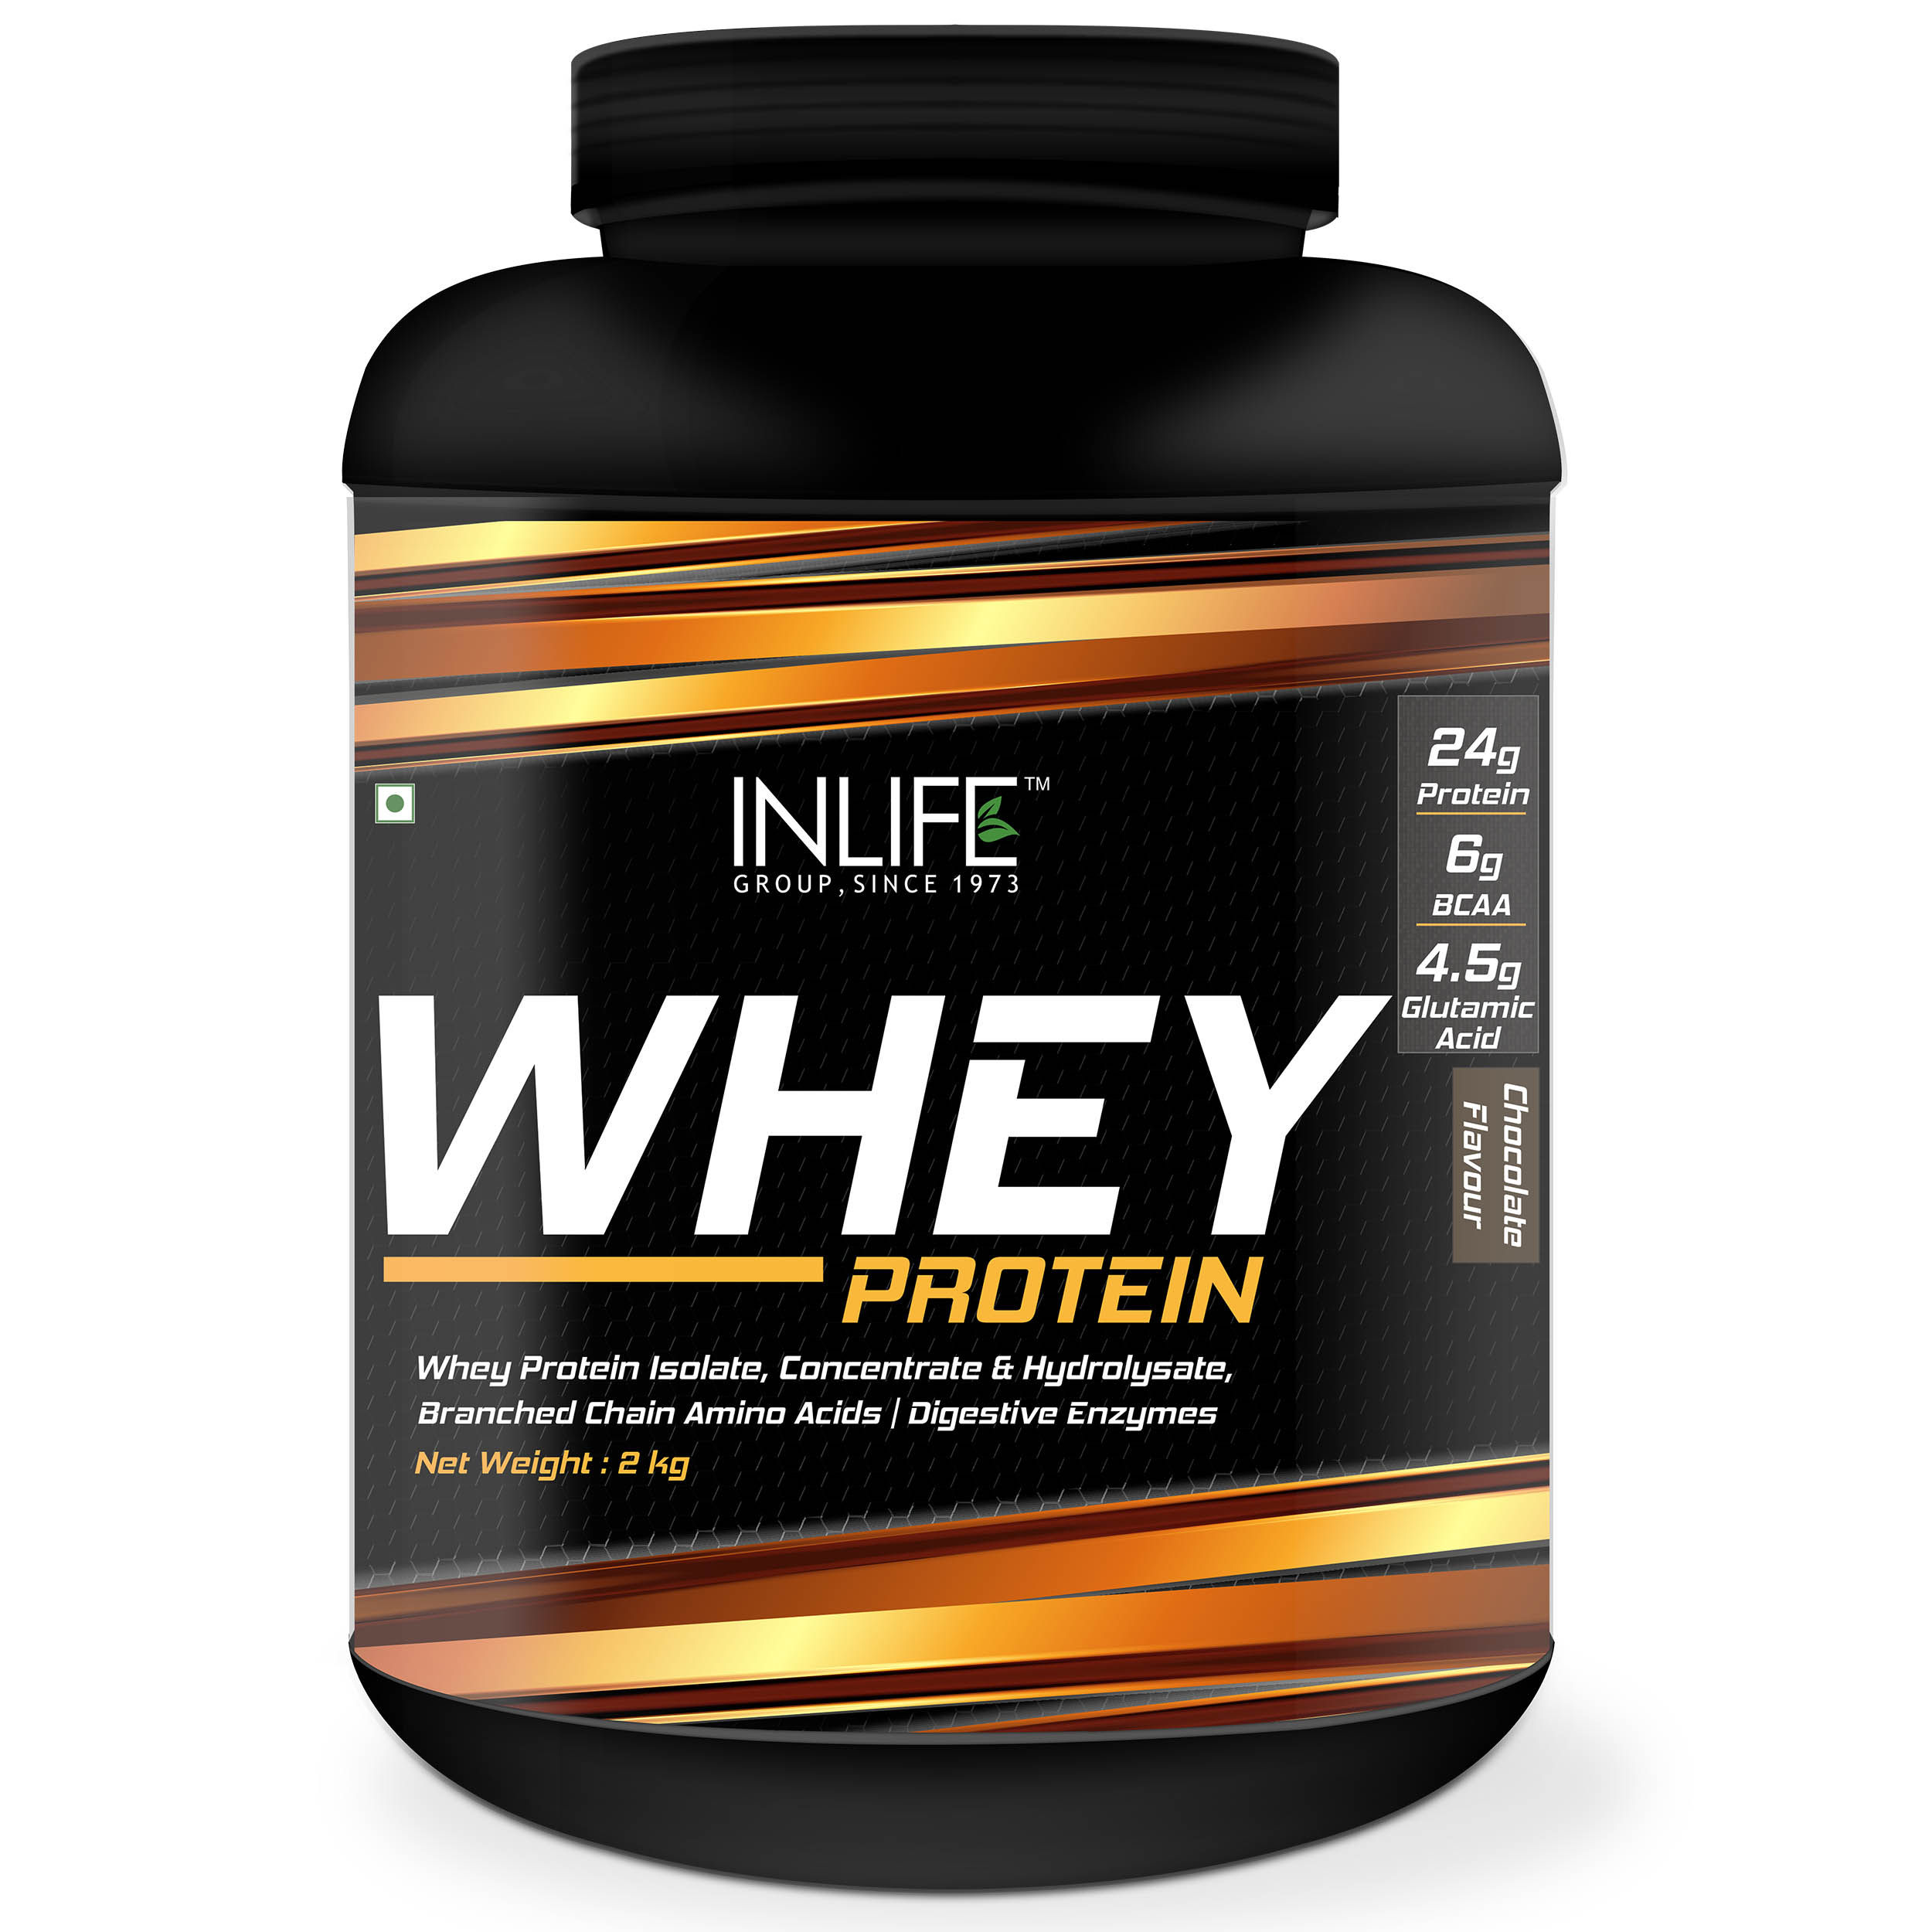 INLIFE Whey Protein Powder Blend Of Isolate Hydrolysate Concentrate Body Building Supplement Chocolate Flavour 2Kg